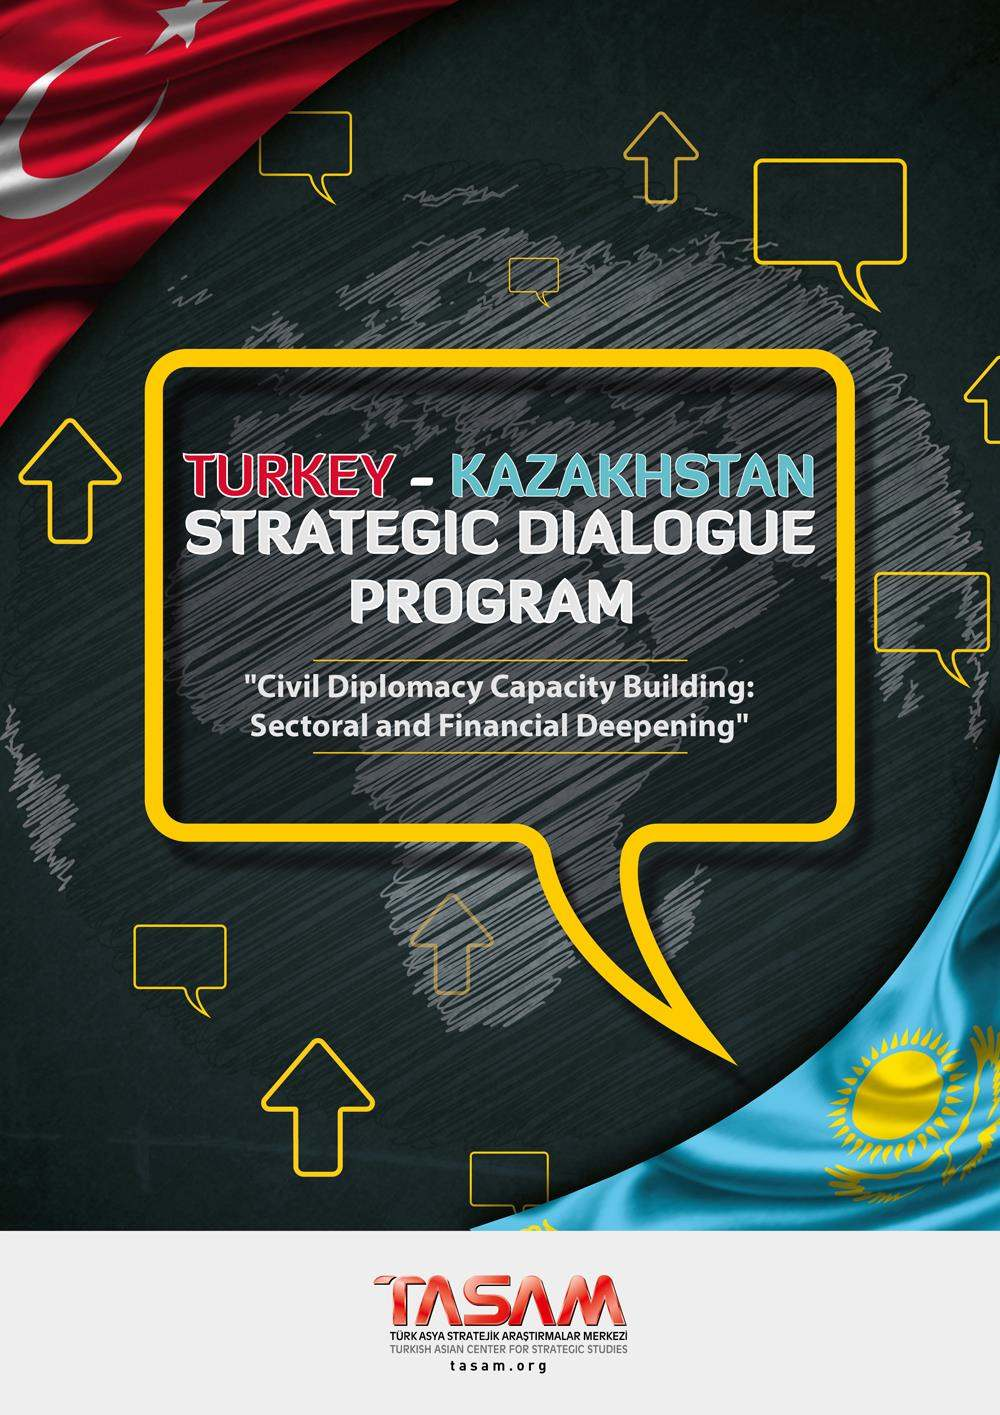 Turkey - Kazakhistan Strategic Dialogue Program